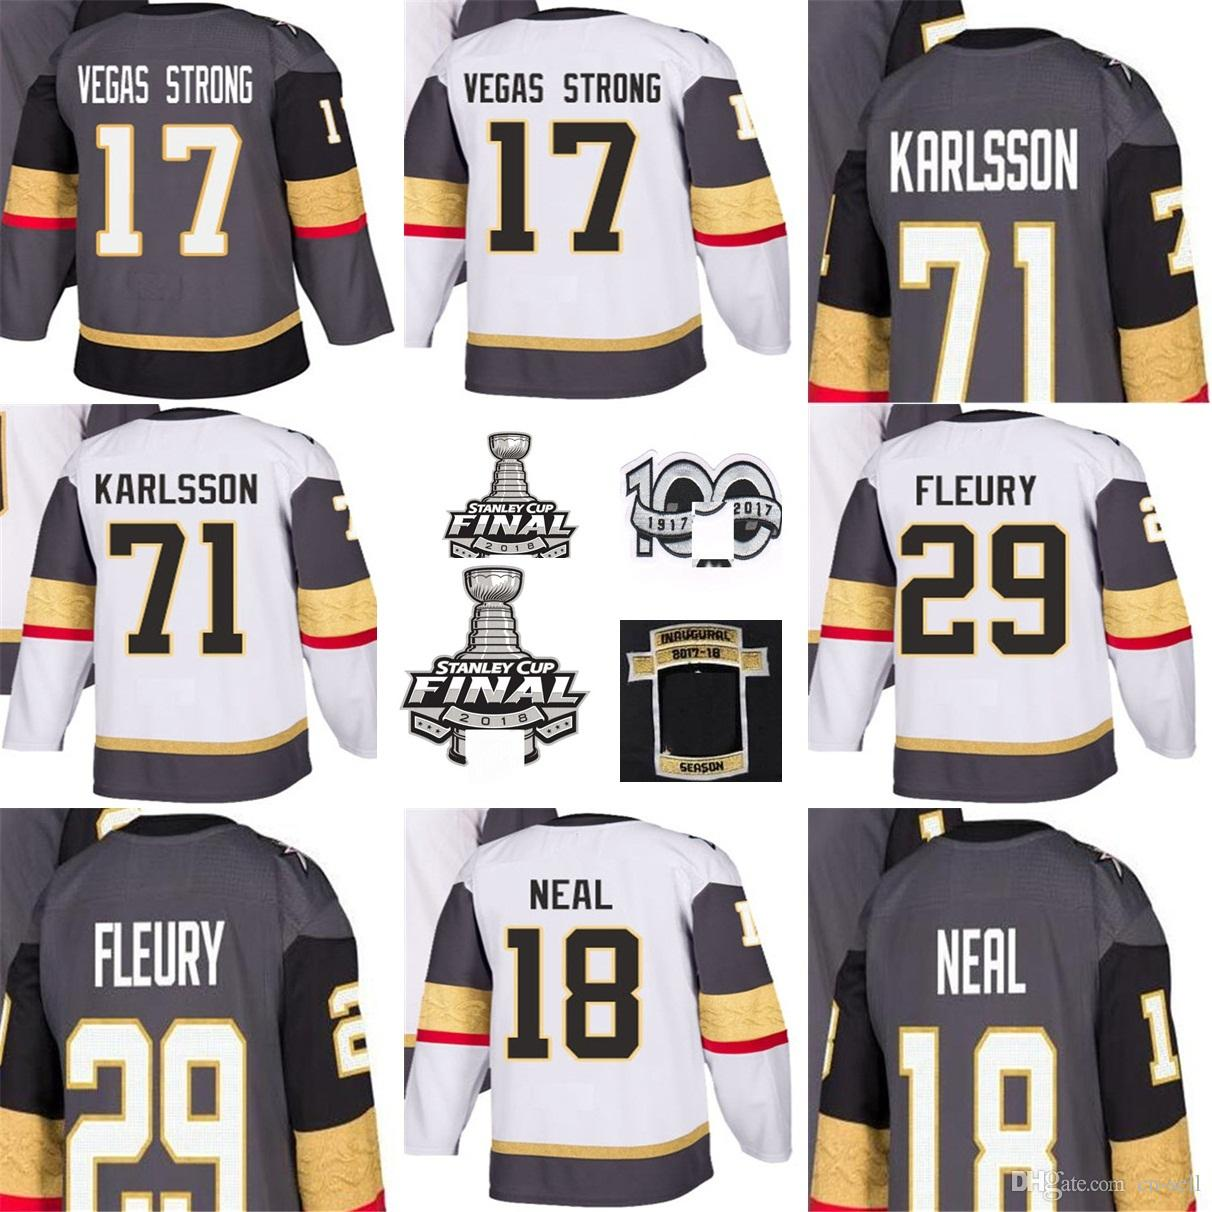 fcecb1640 2018 Stanley Cup Final Inaugural 100th Patch 29 Marc Andre Fleury James  Neal 71 Karlsson Vegas Strong Hockey Jerseys Vegas Golden Knights UK 2019  From Cn ...